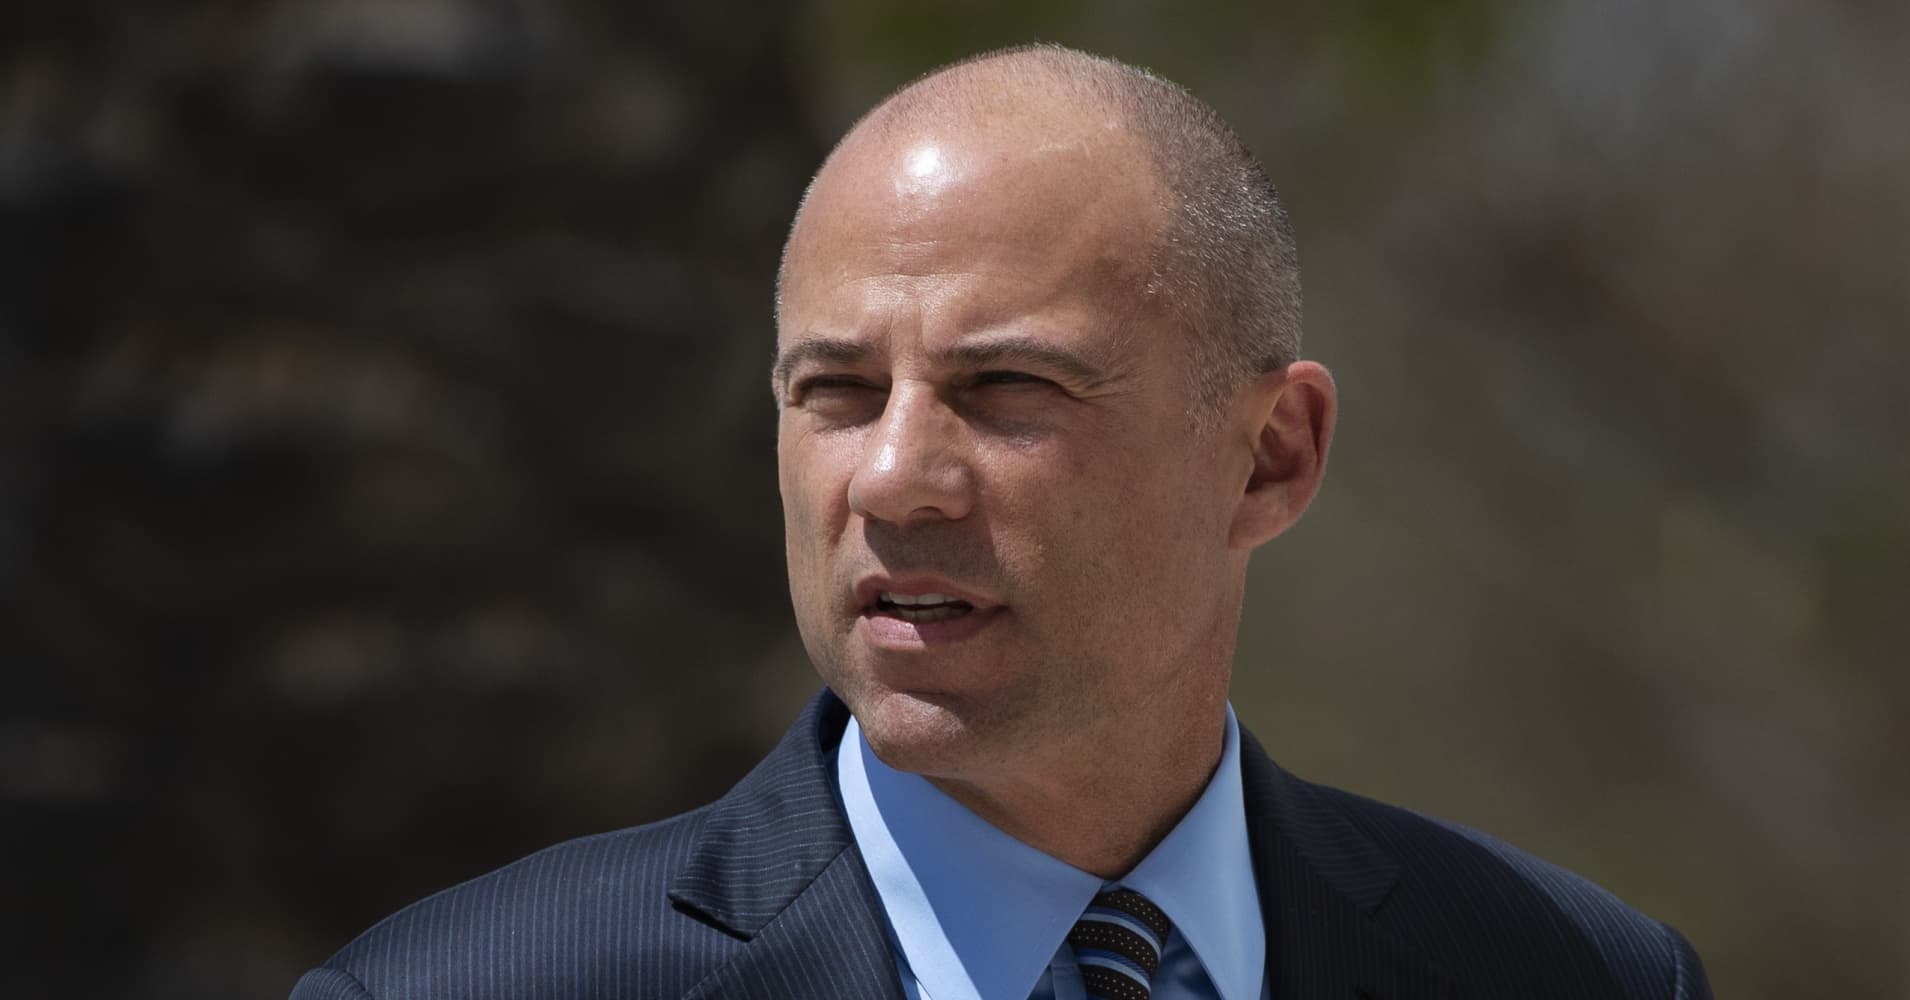 Michael Avenatti says Nike 'pulled a stunt' by having him arrested